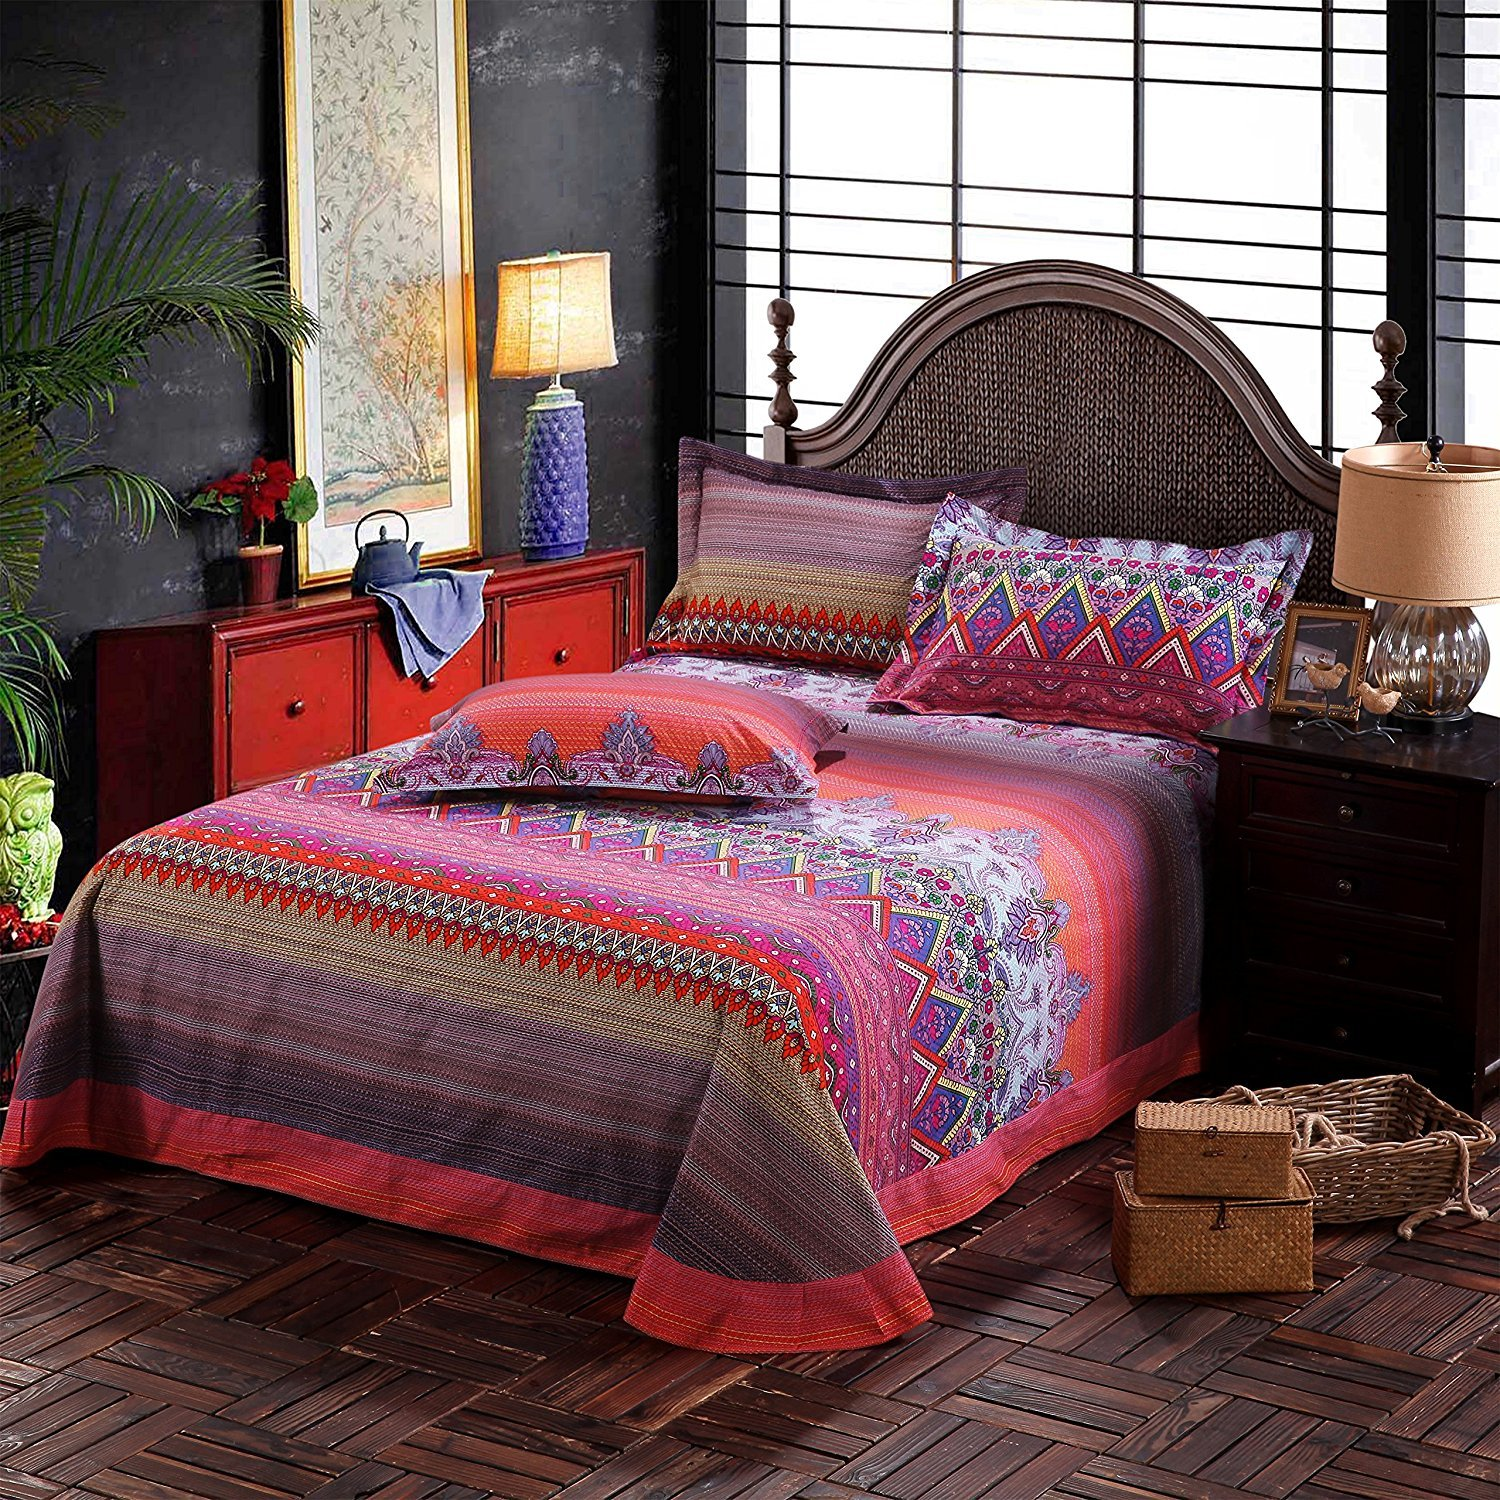 FADFAY Colorful Bohemian Ethnic Style Bedding Boho Duvet Cover Bohemian Sheet Sets Baroque Style Bedding 4 Pcs (Twin XL, Flat Sheet) by FADFAY (Image #3)